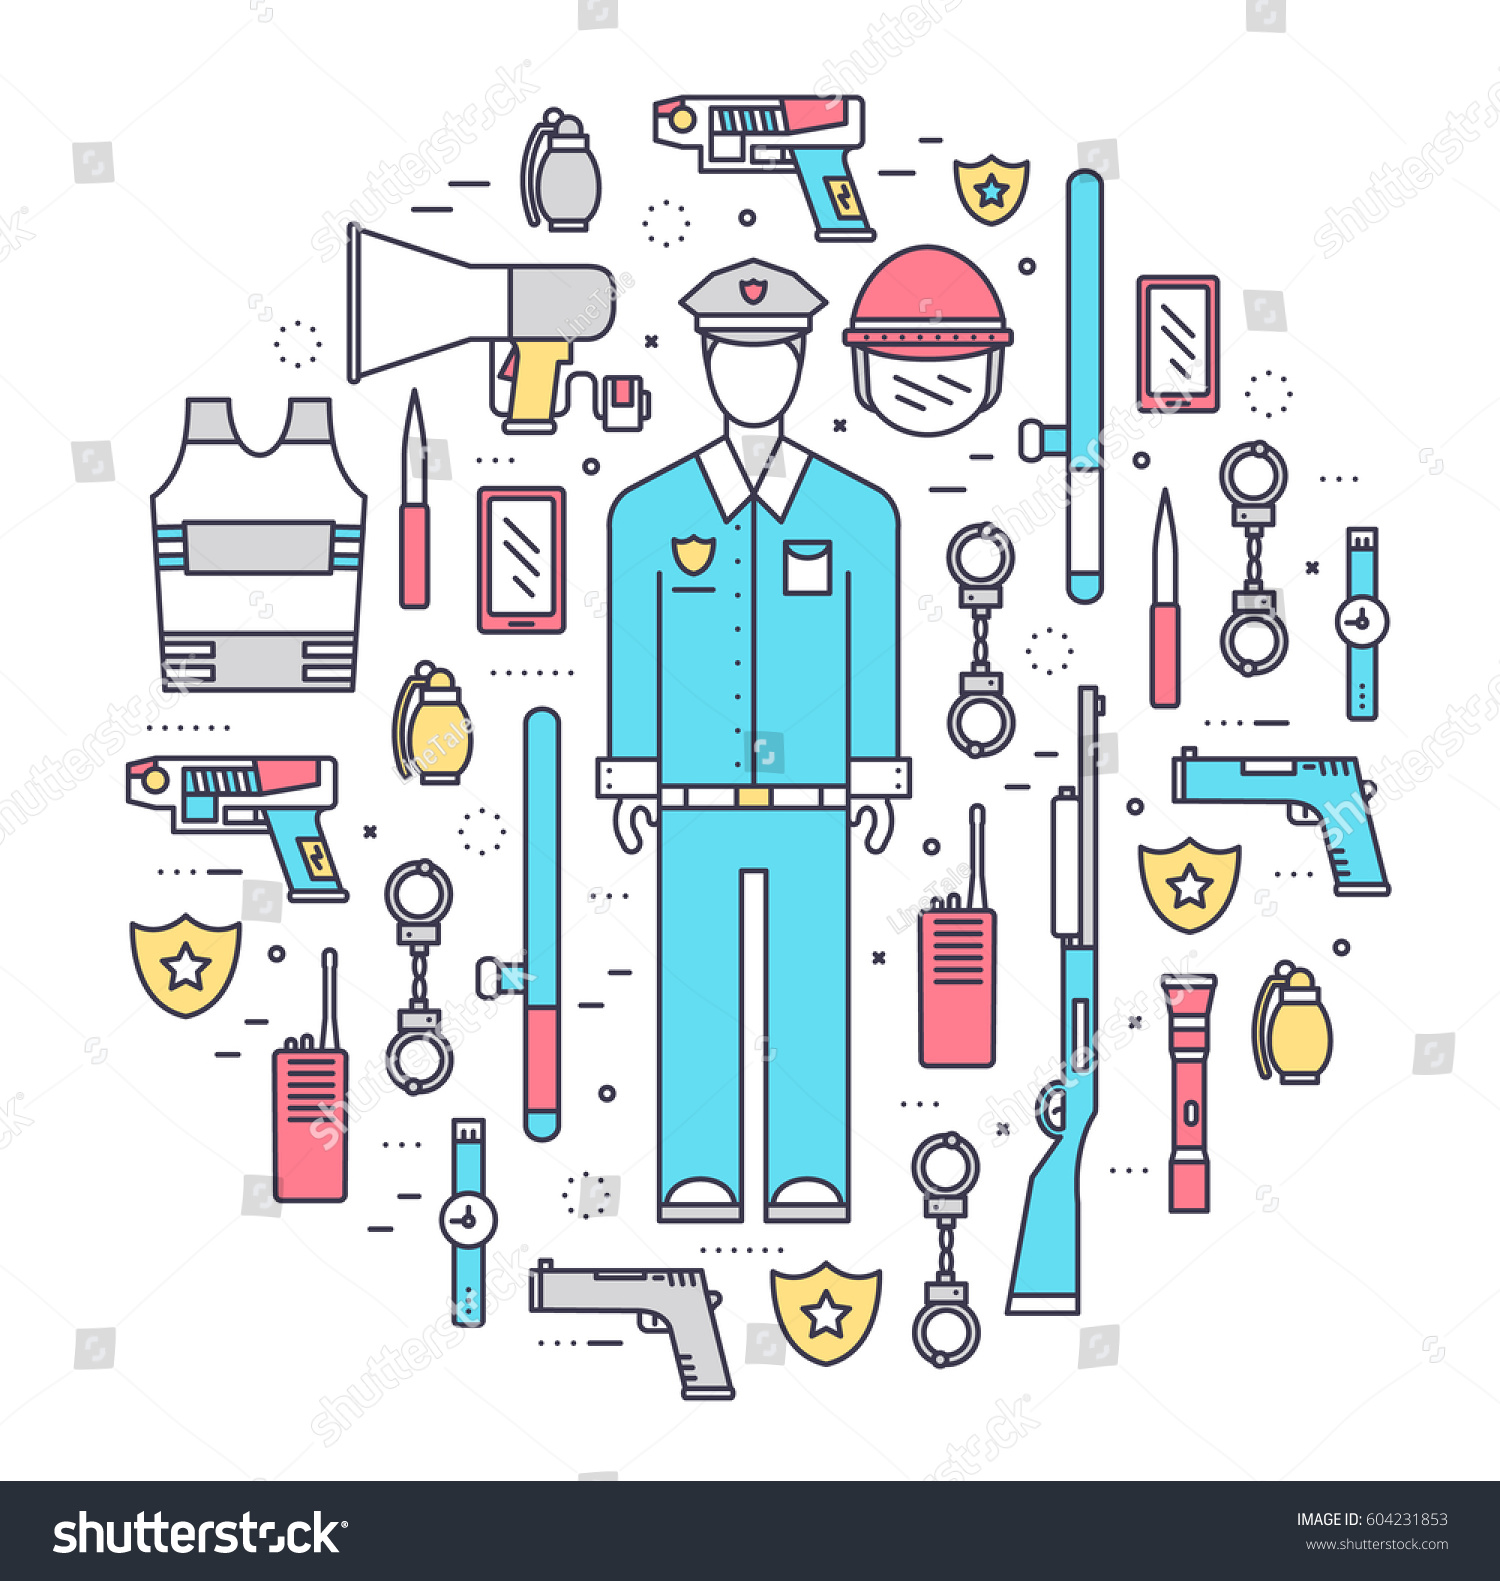 Military Police Uniform Thin Line Icons Stock Vector Royalty Free Electronic Stethoscope Circuit Diagrams Schematics